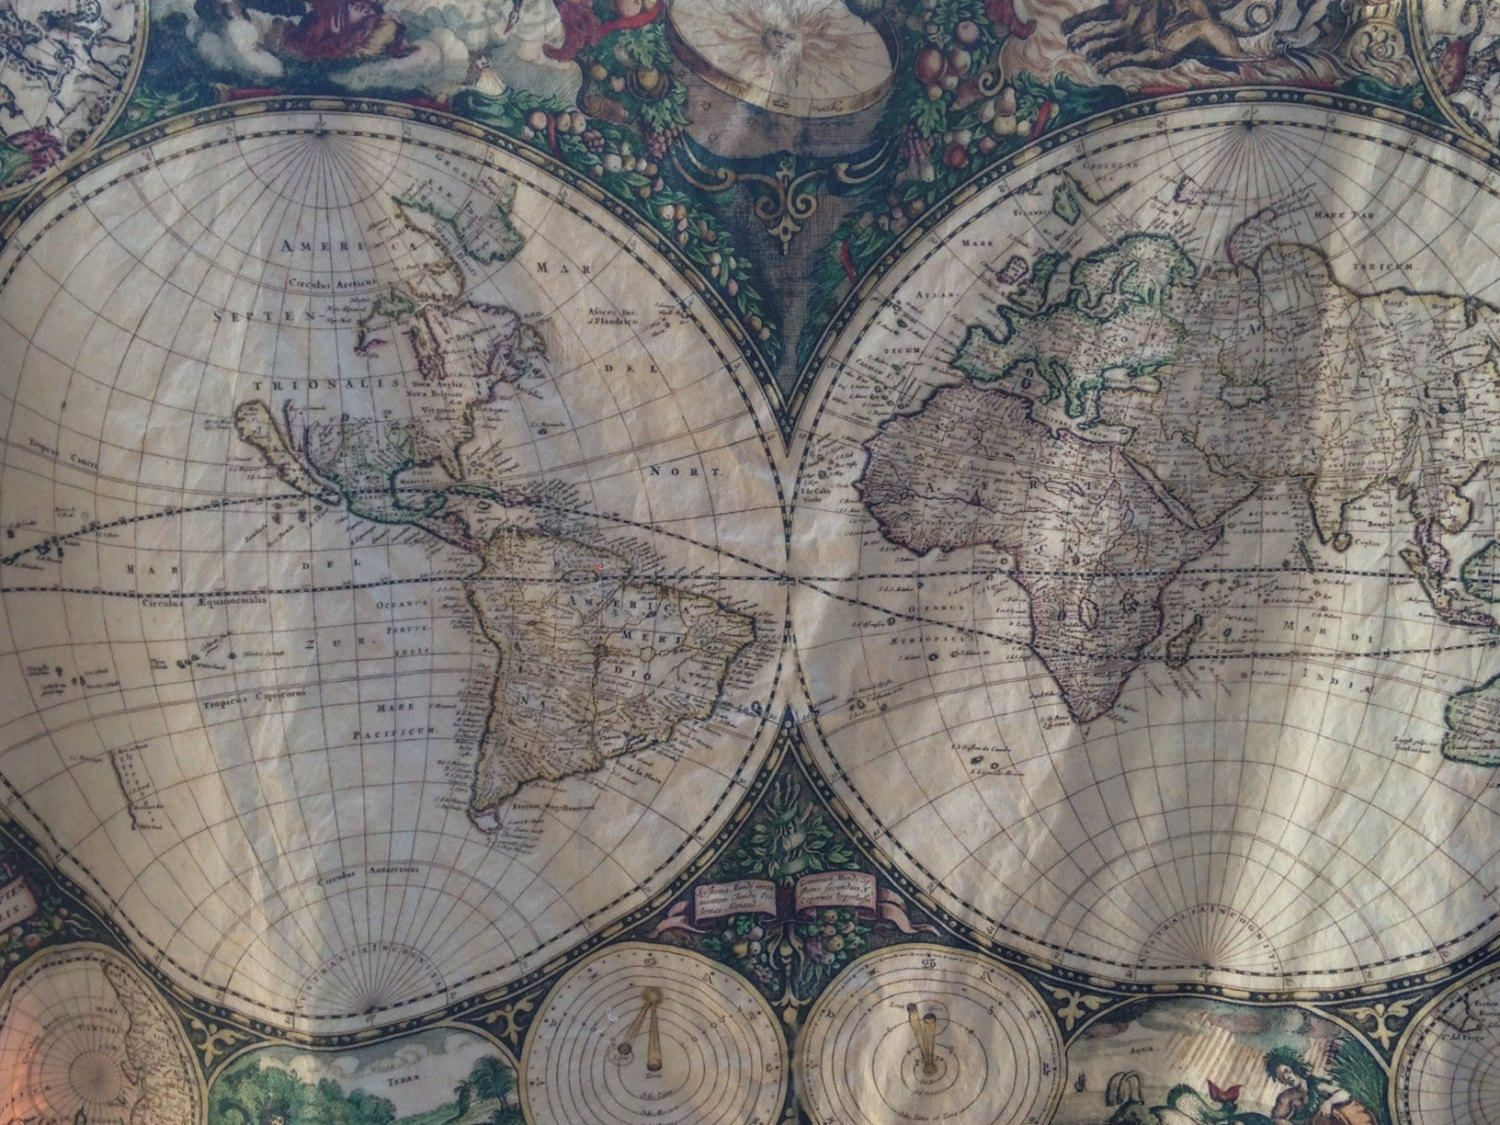 World map minky blanket baby cuddle quilt vintage art map of the world map minky blanket baby cuddle quilt vintage art map of the world gumiabroncs Images